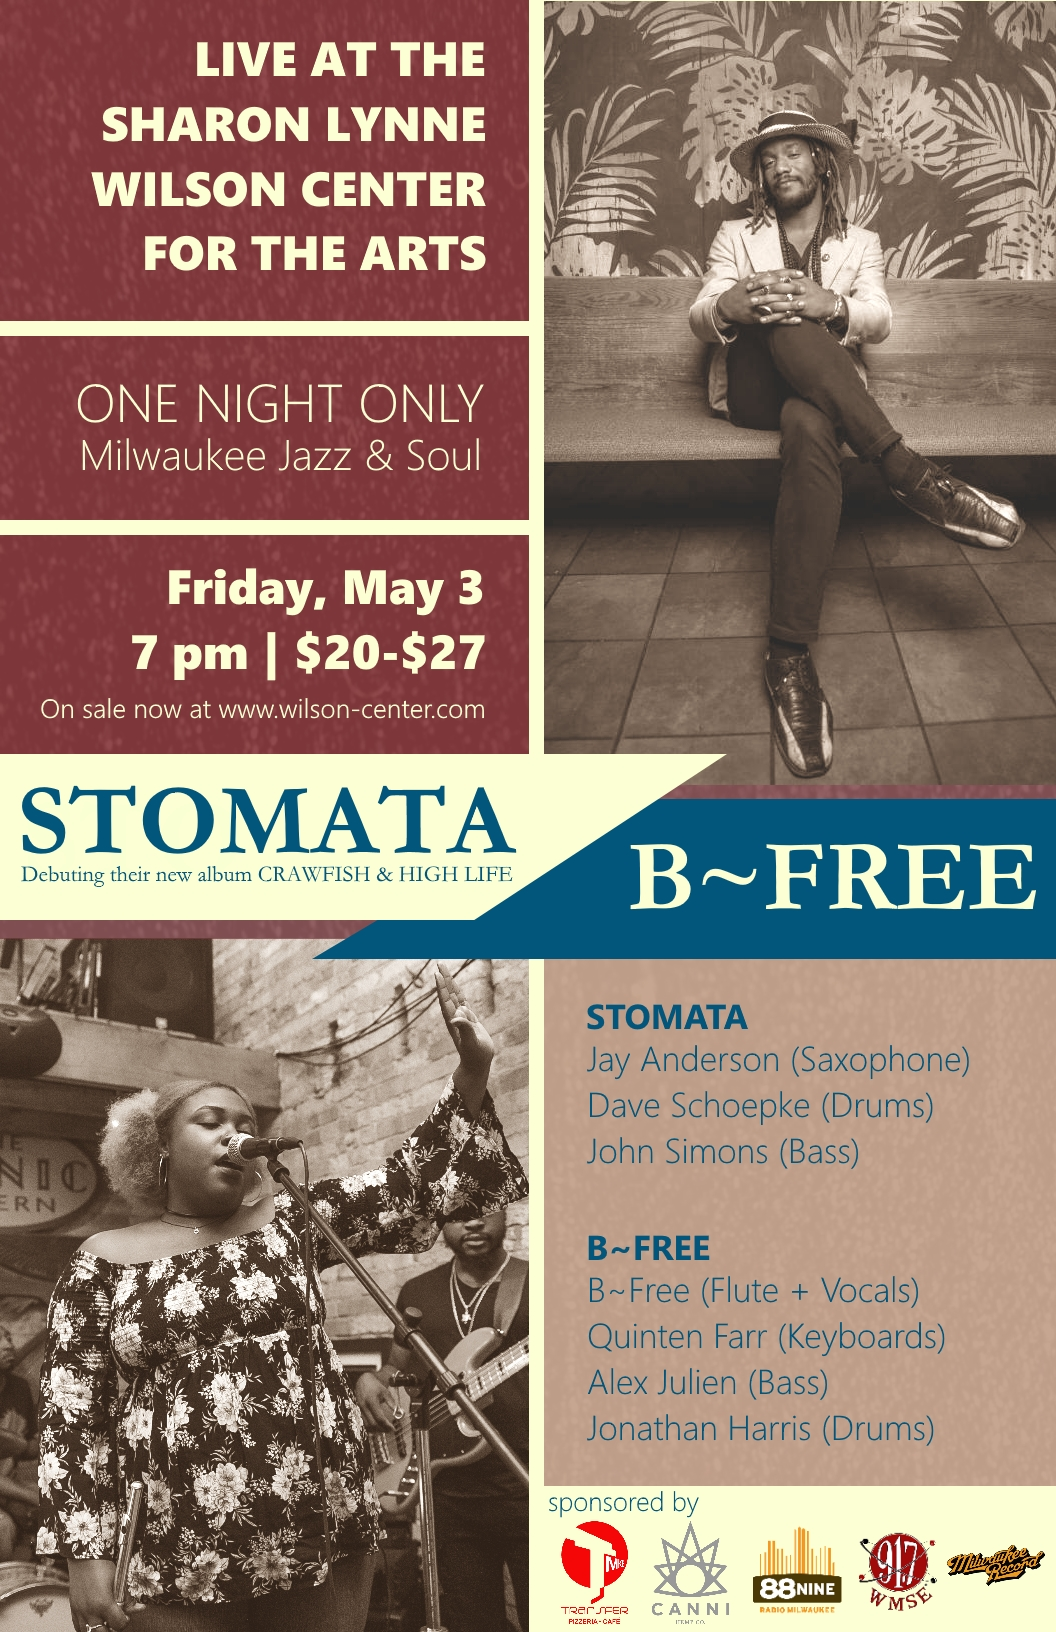 Stomata BFree Wilson Center Show Poster.jpg